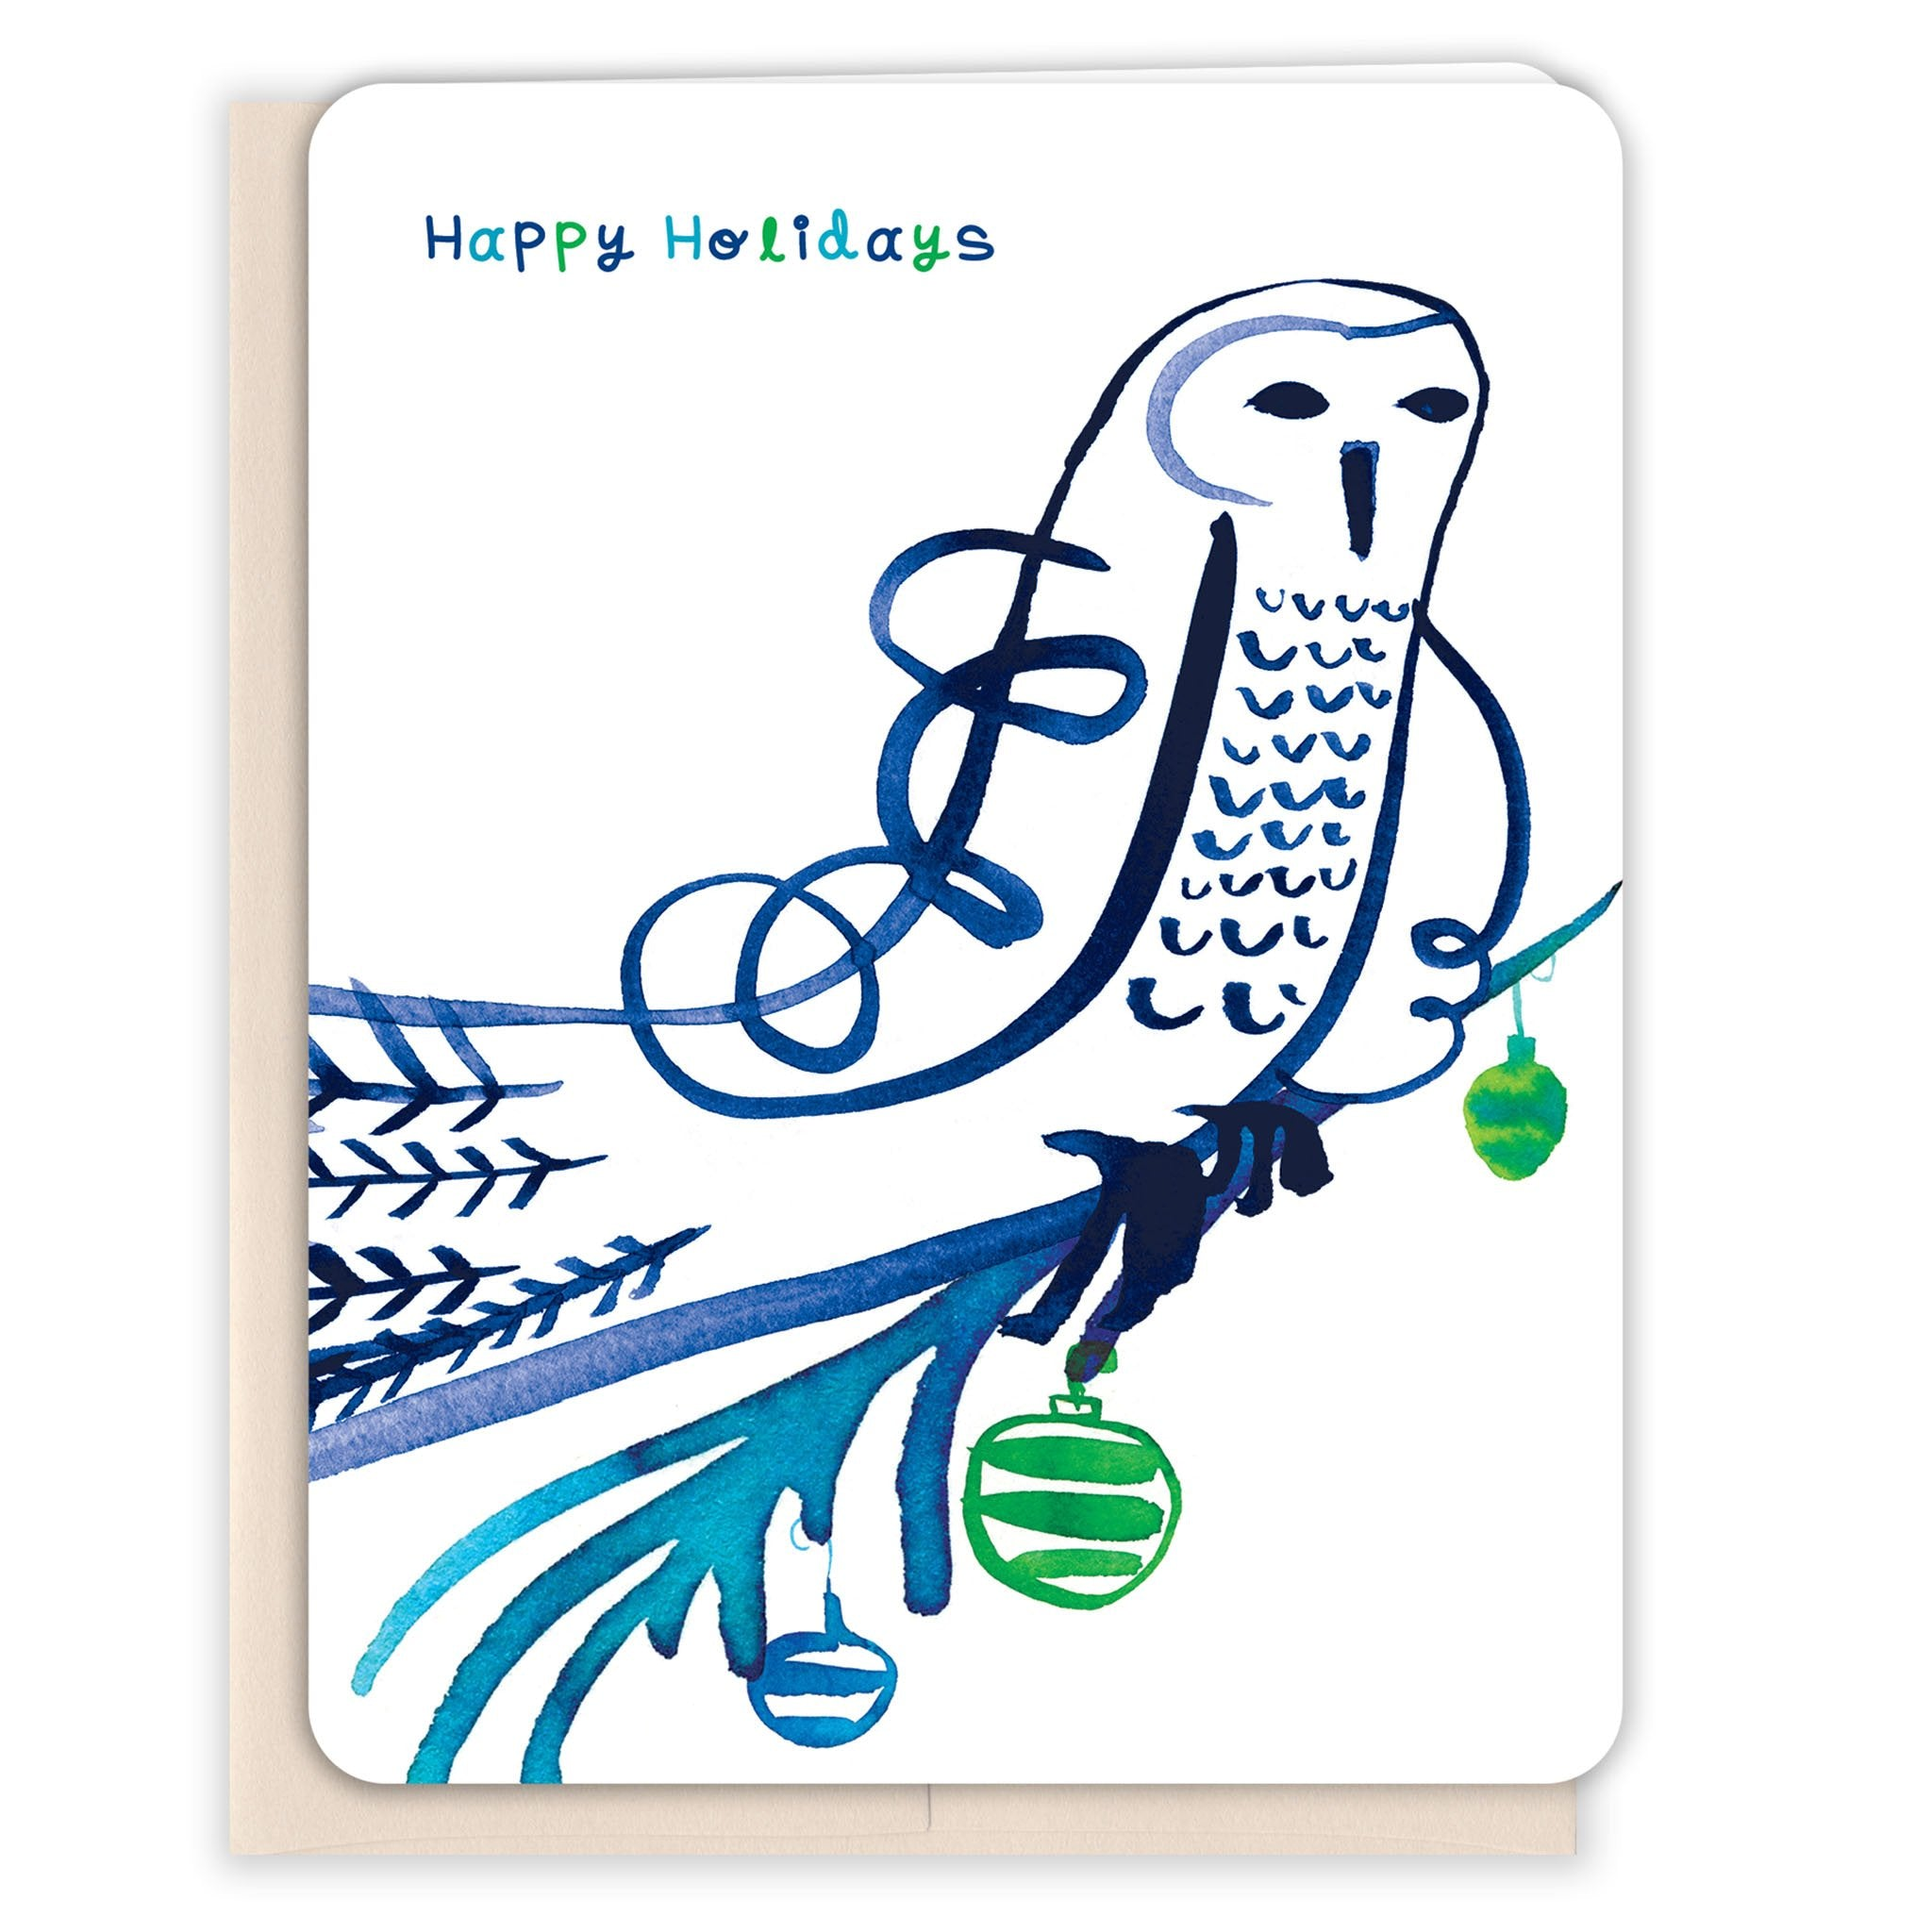 Holiday-Blue-Owl-Holiday-Card